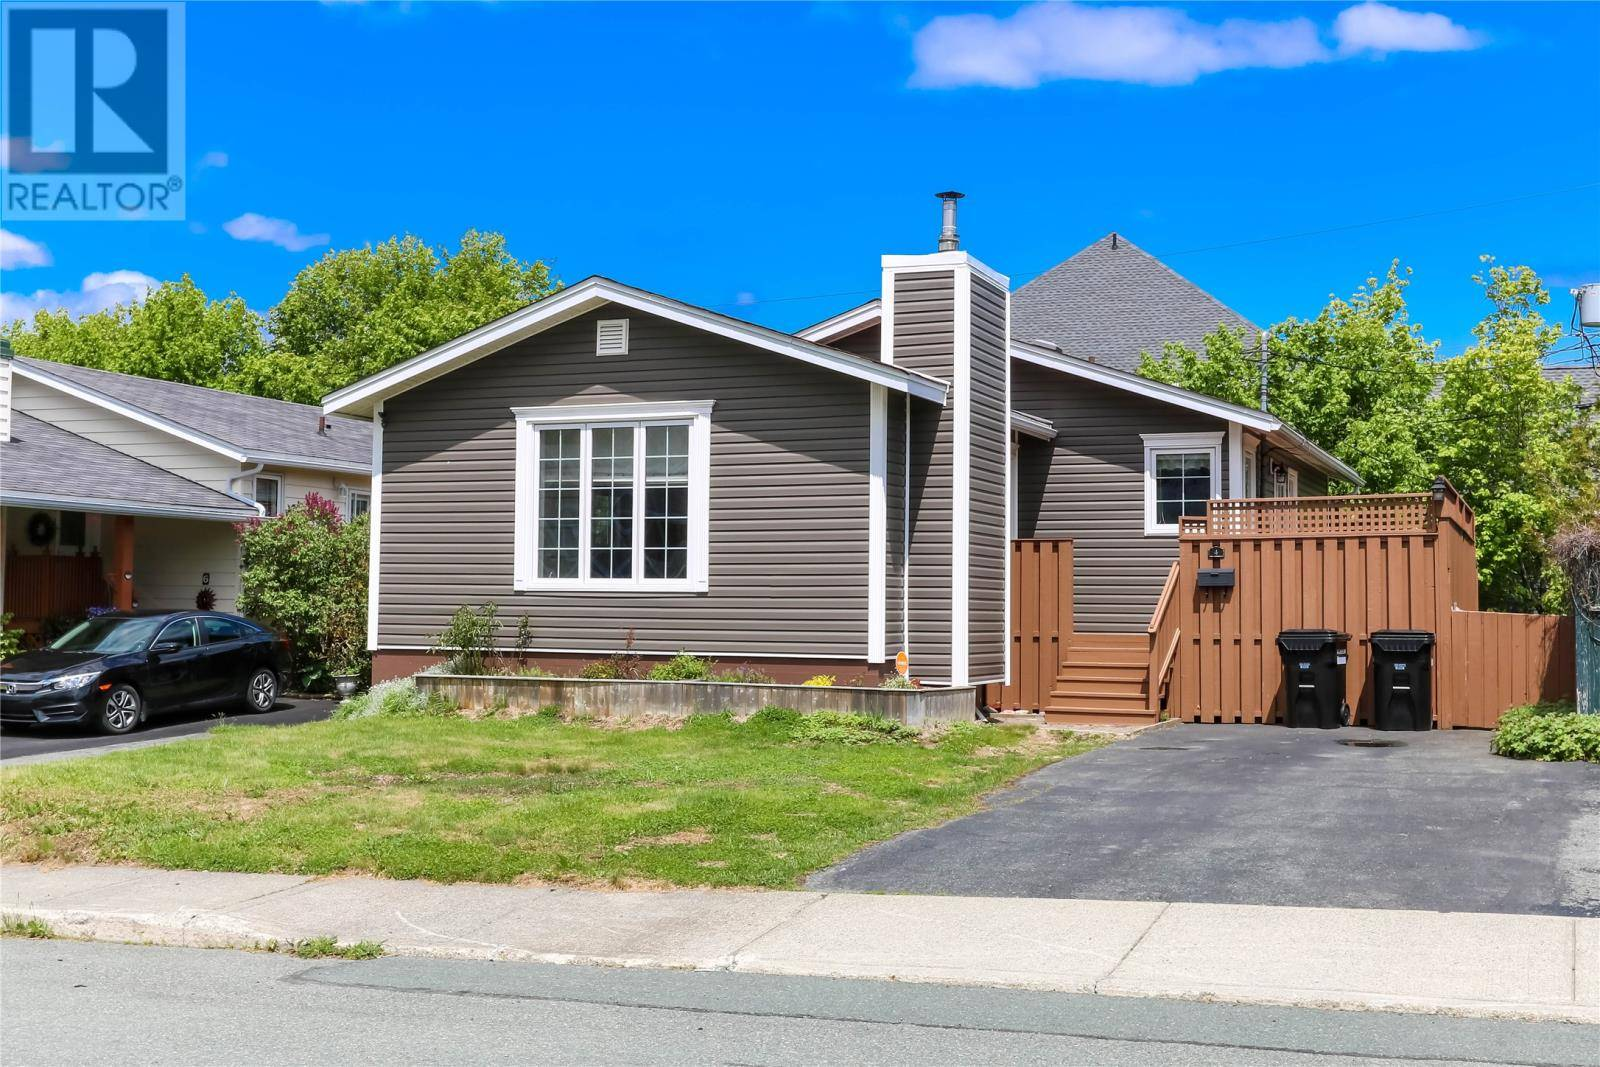 House for sale at 4 Goodyear Pl St. John's Newfoundland - MLS: 1205081